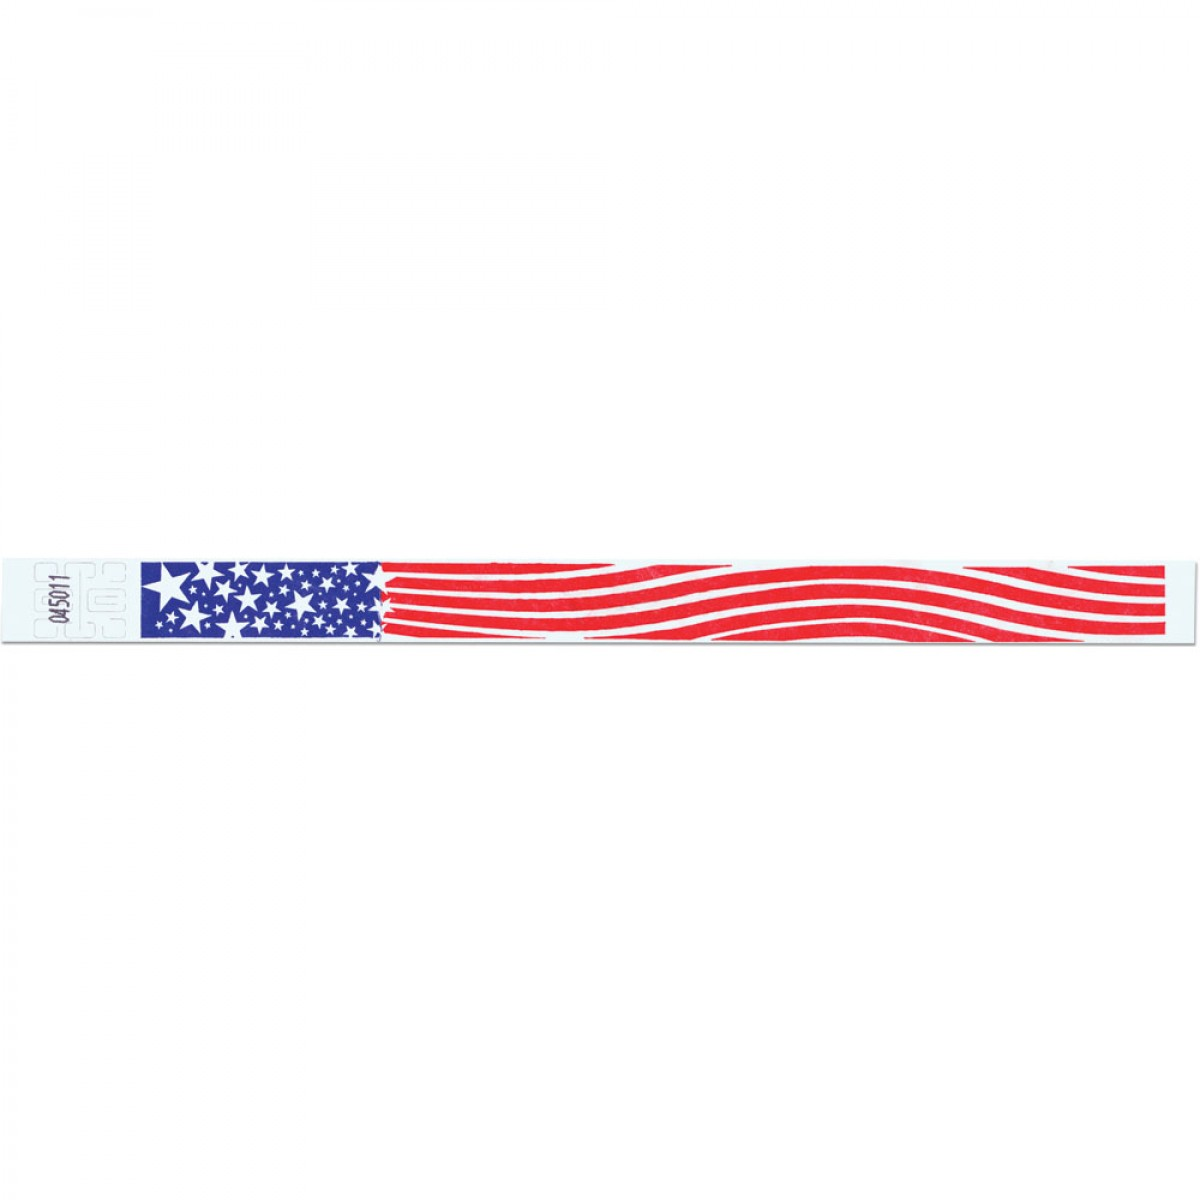 Tyvek Patriotic Wristbands